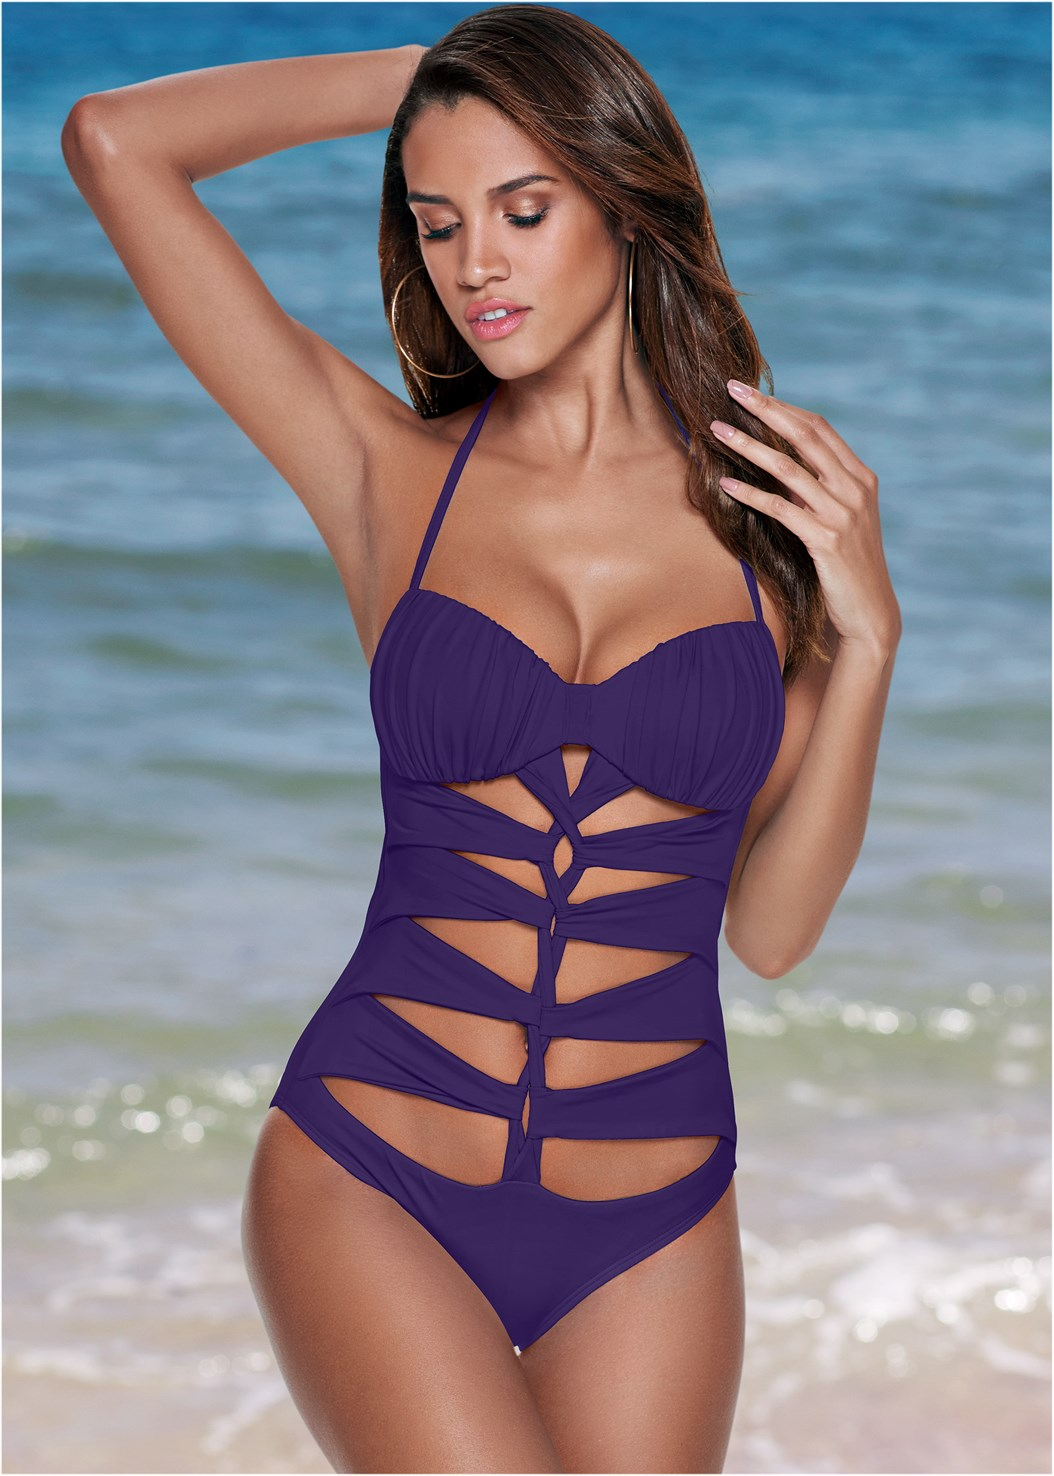 Drama Queen One-Piece,Lace Up Crochet Cover-Up